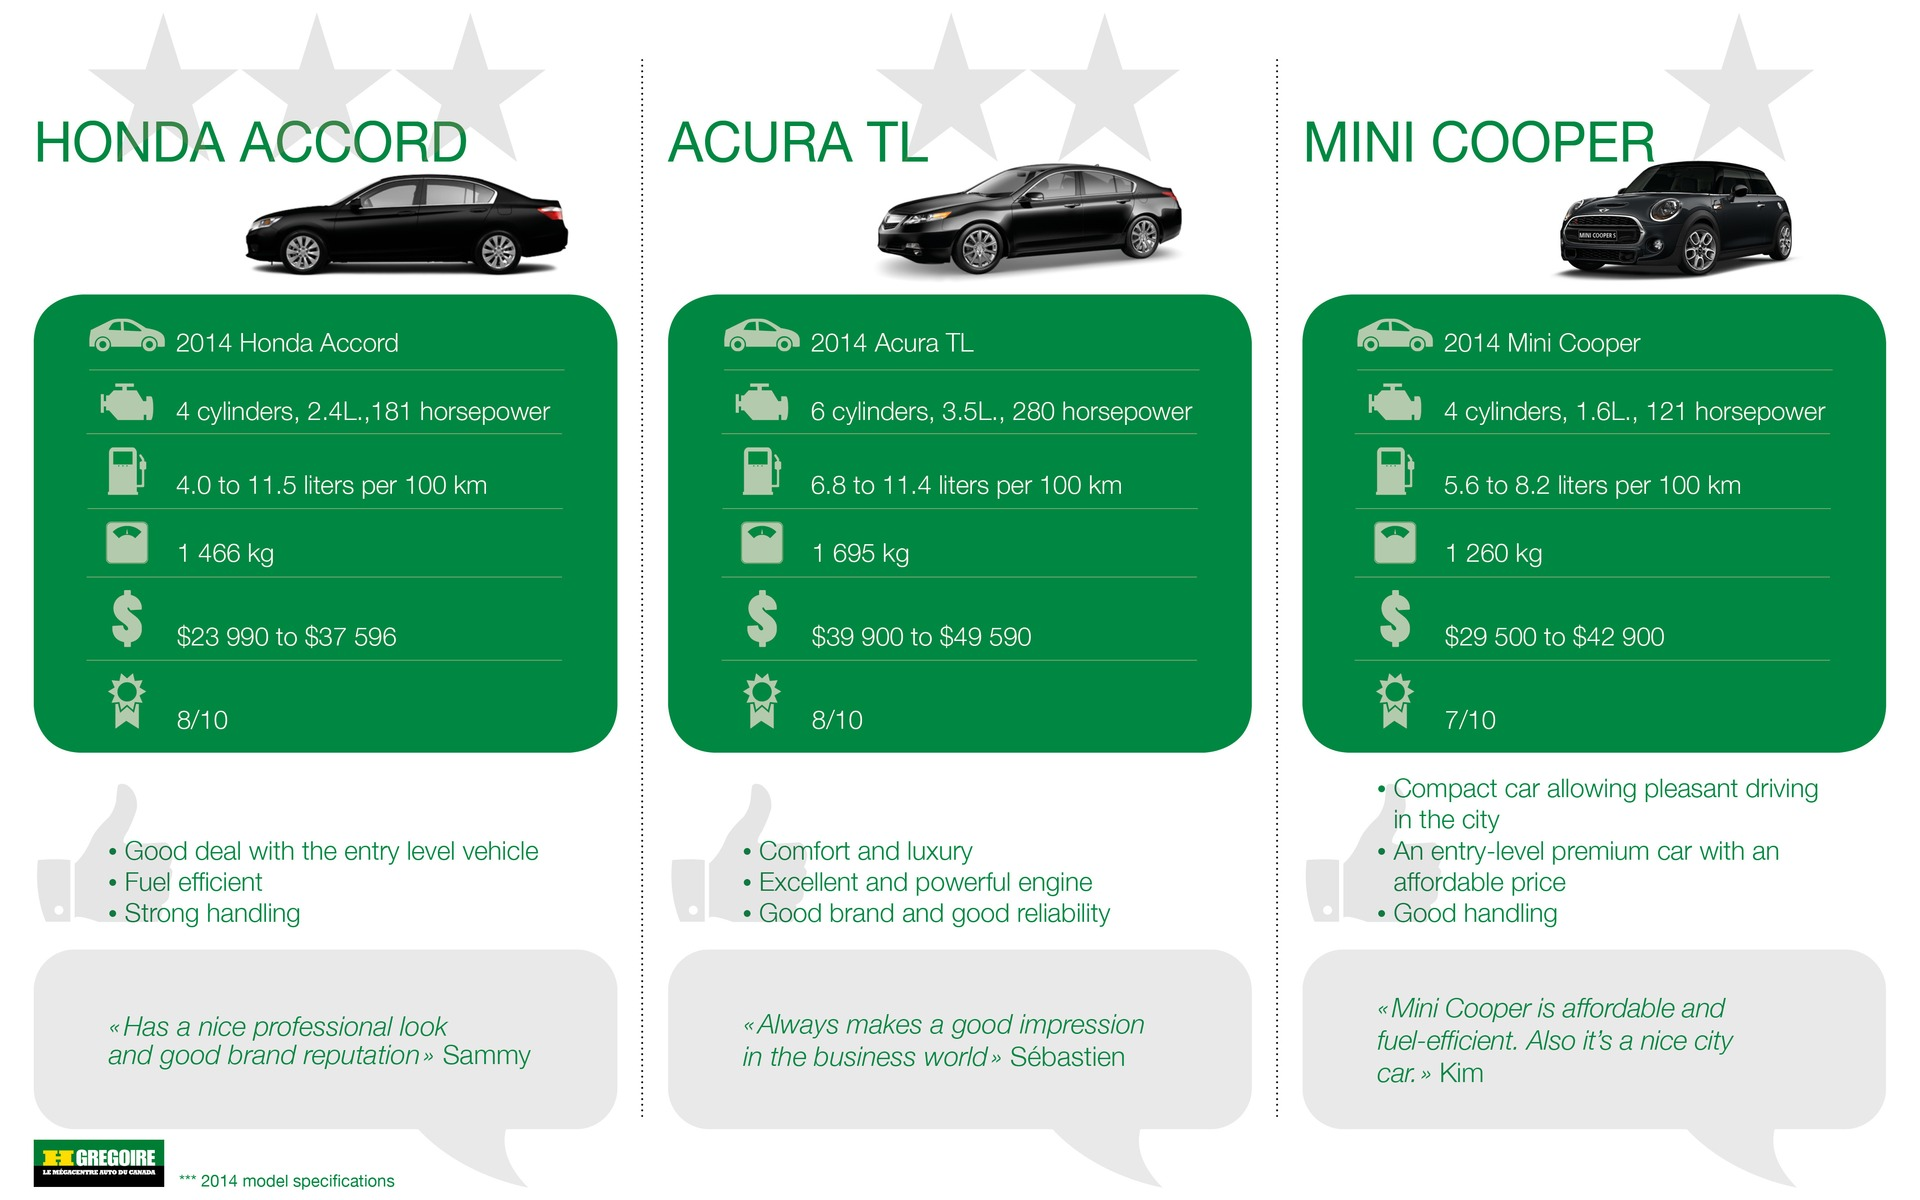 Comparative: The Best Car For Young Professionals